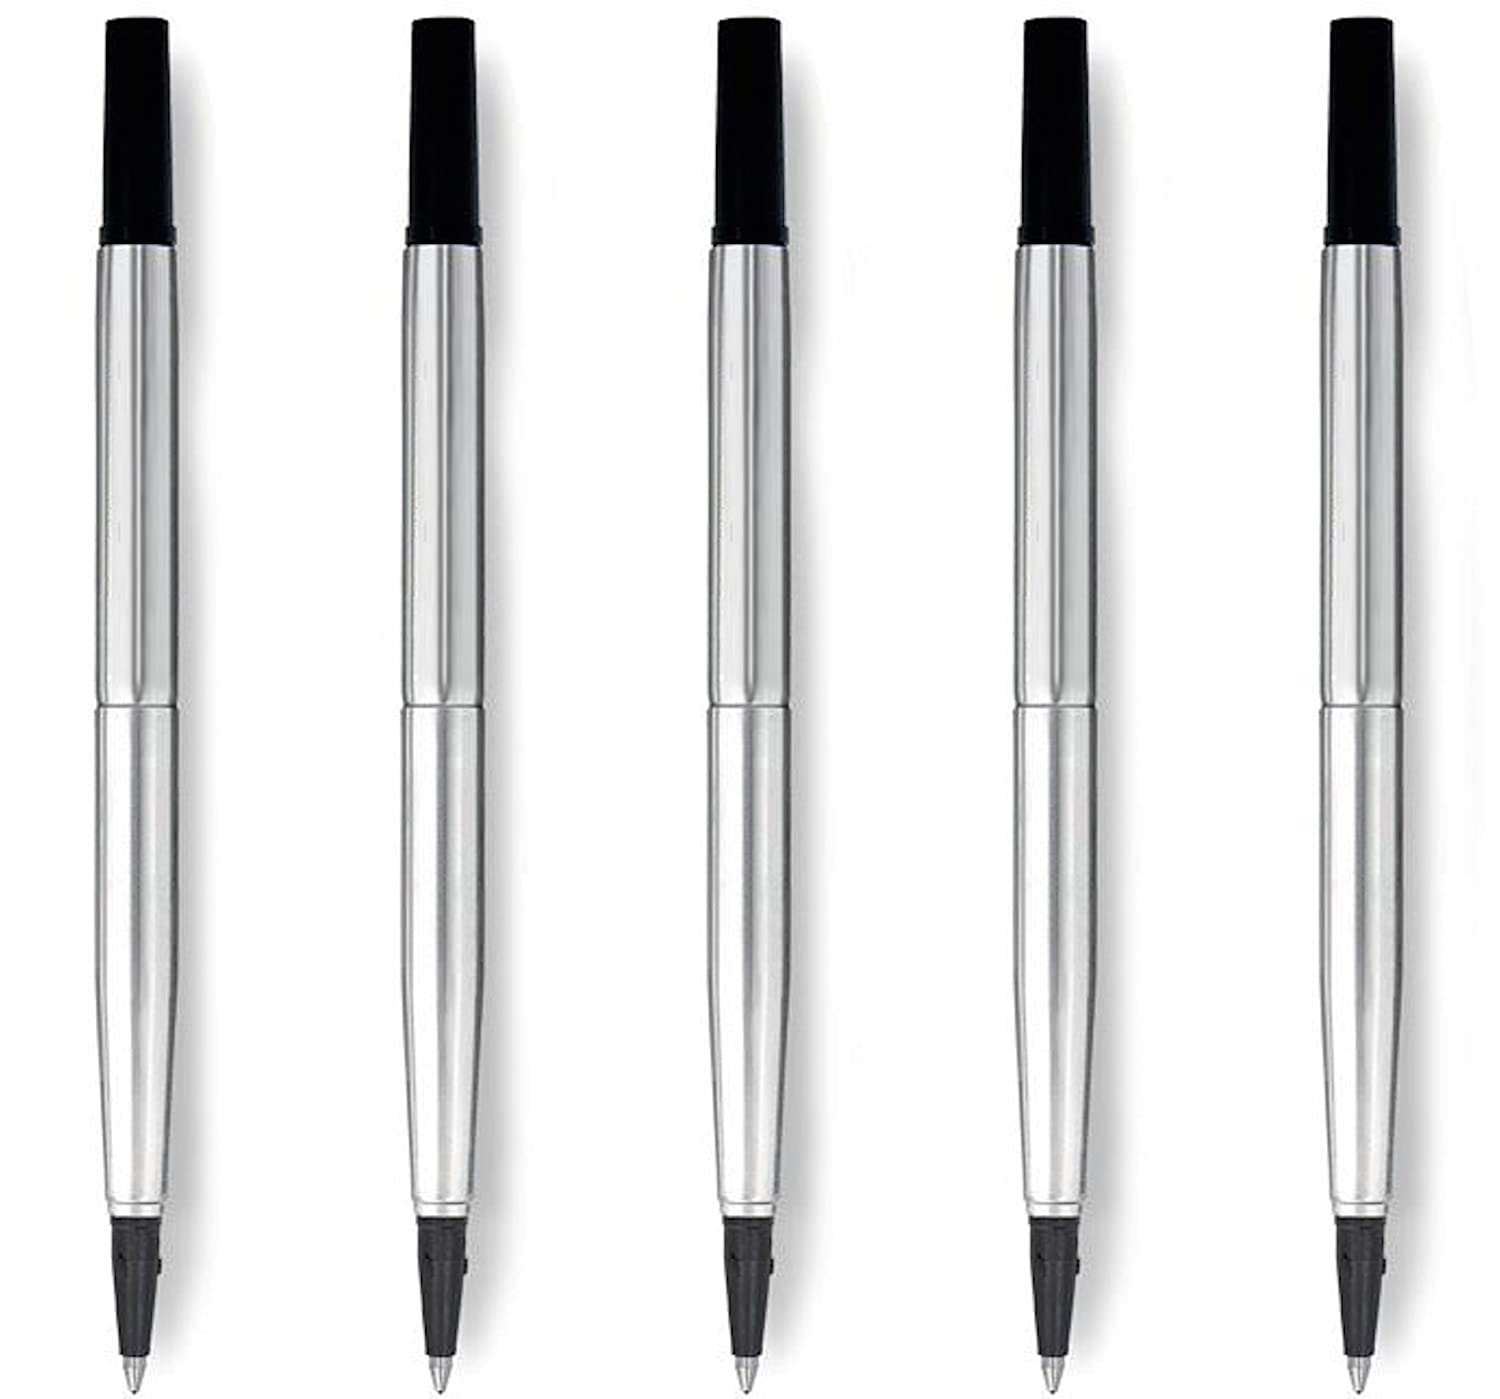 5X Blue Parker Quink Rollerball Pen Refills Medium - Compatible OfficeCentre